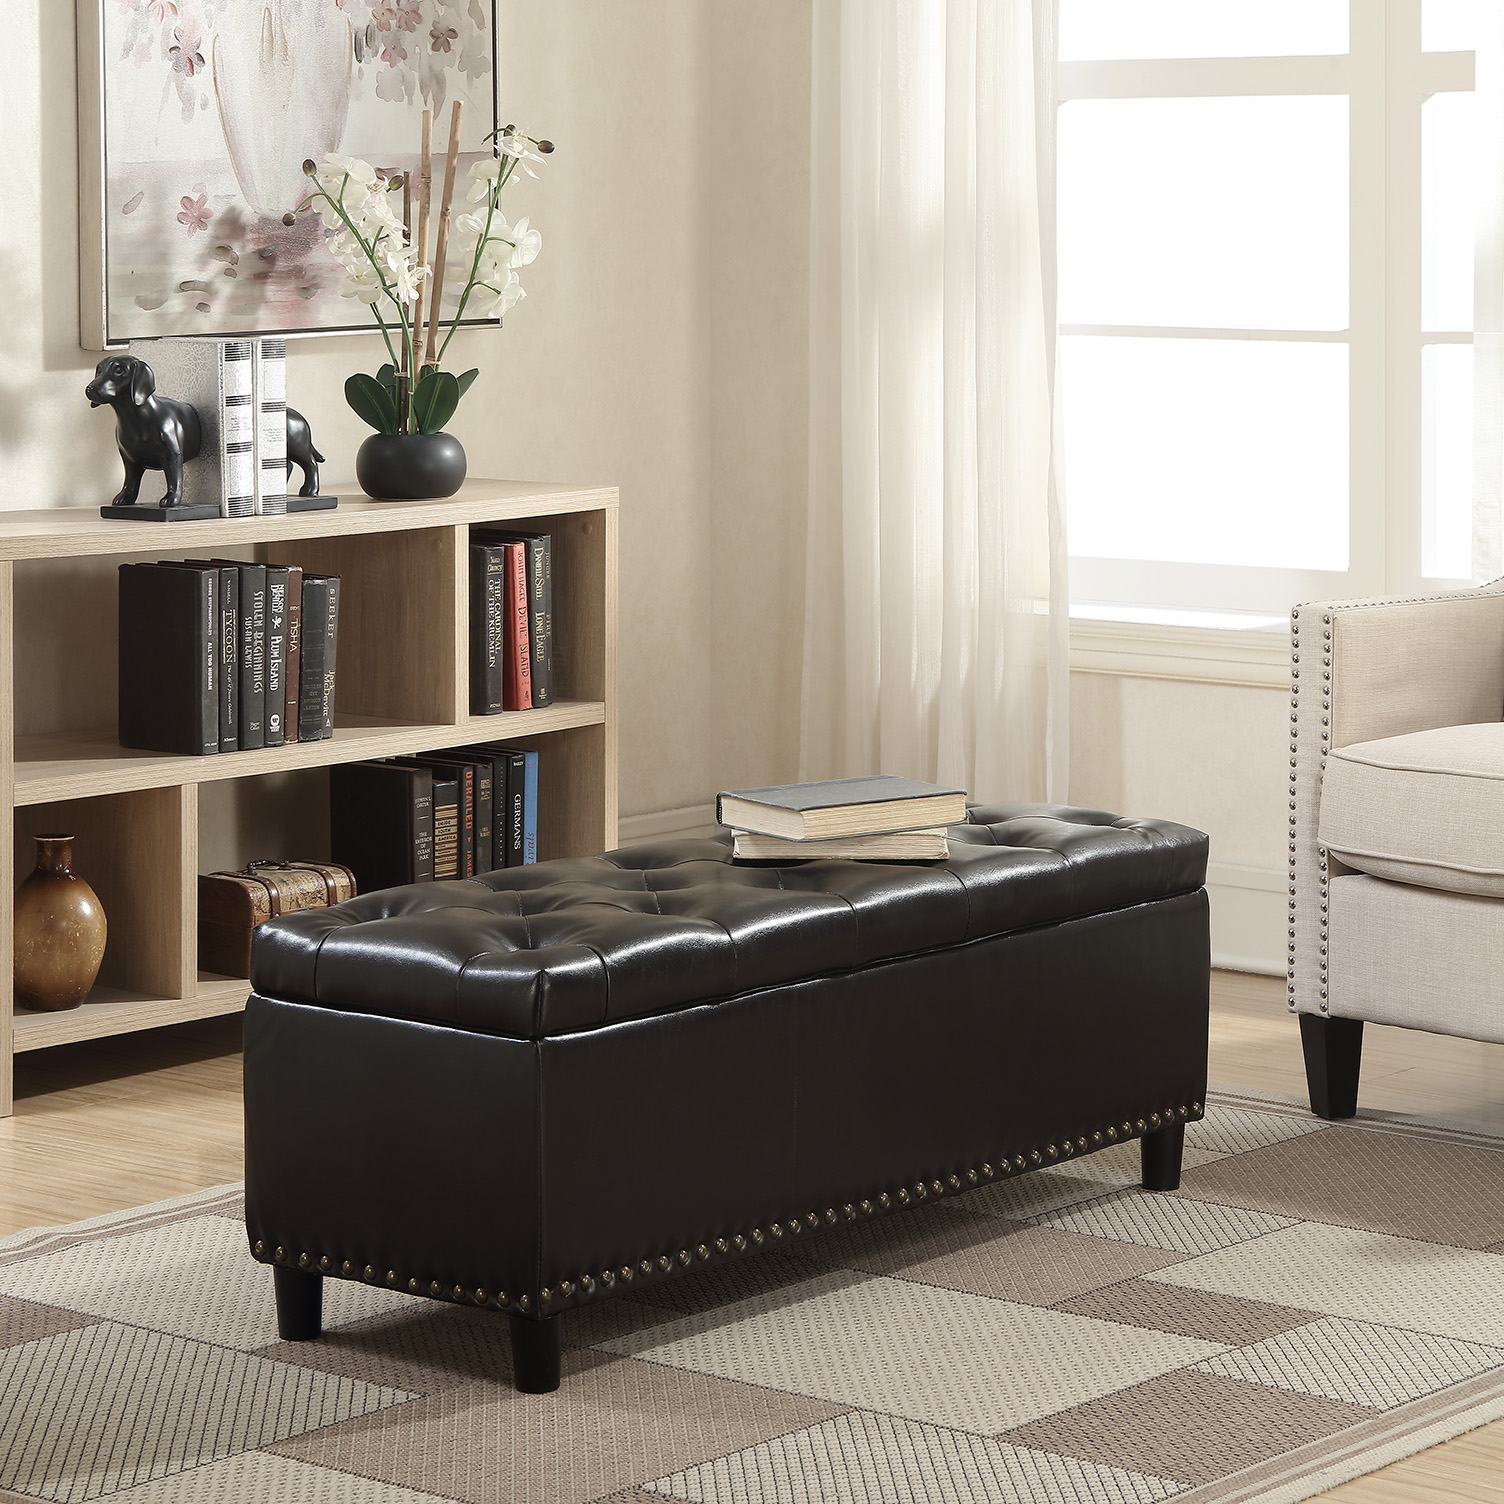 "Belleze 48"" Rectangular Faux Leather Storage Ottoman Bench Footrest, Large Space Footrest, Brown"